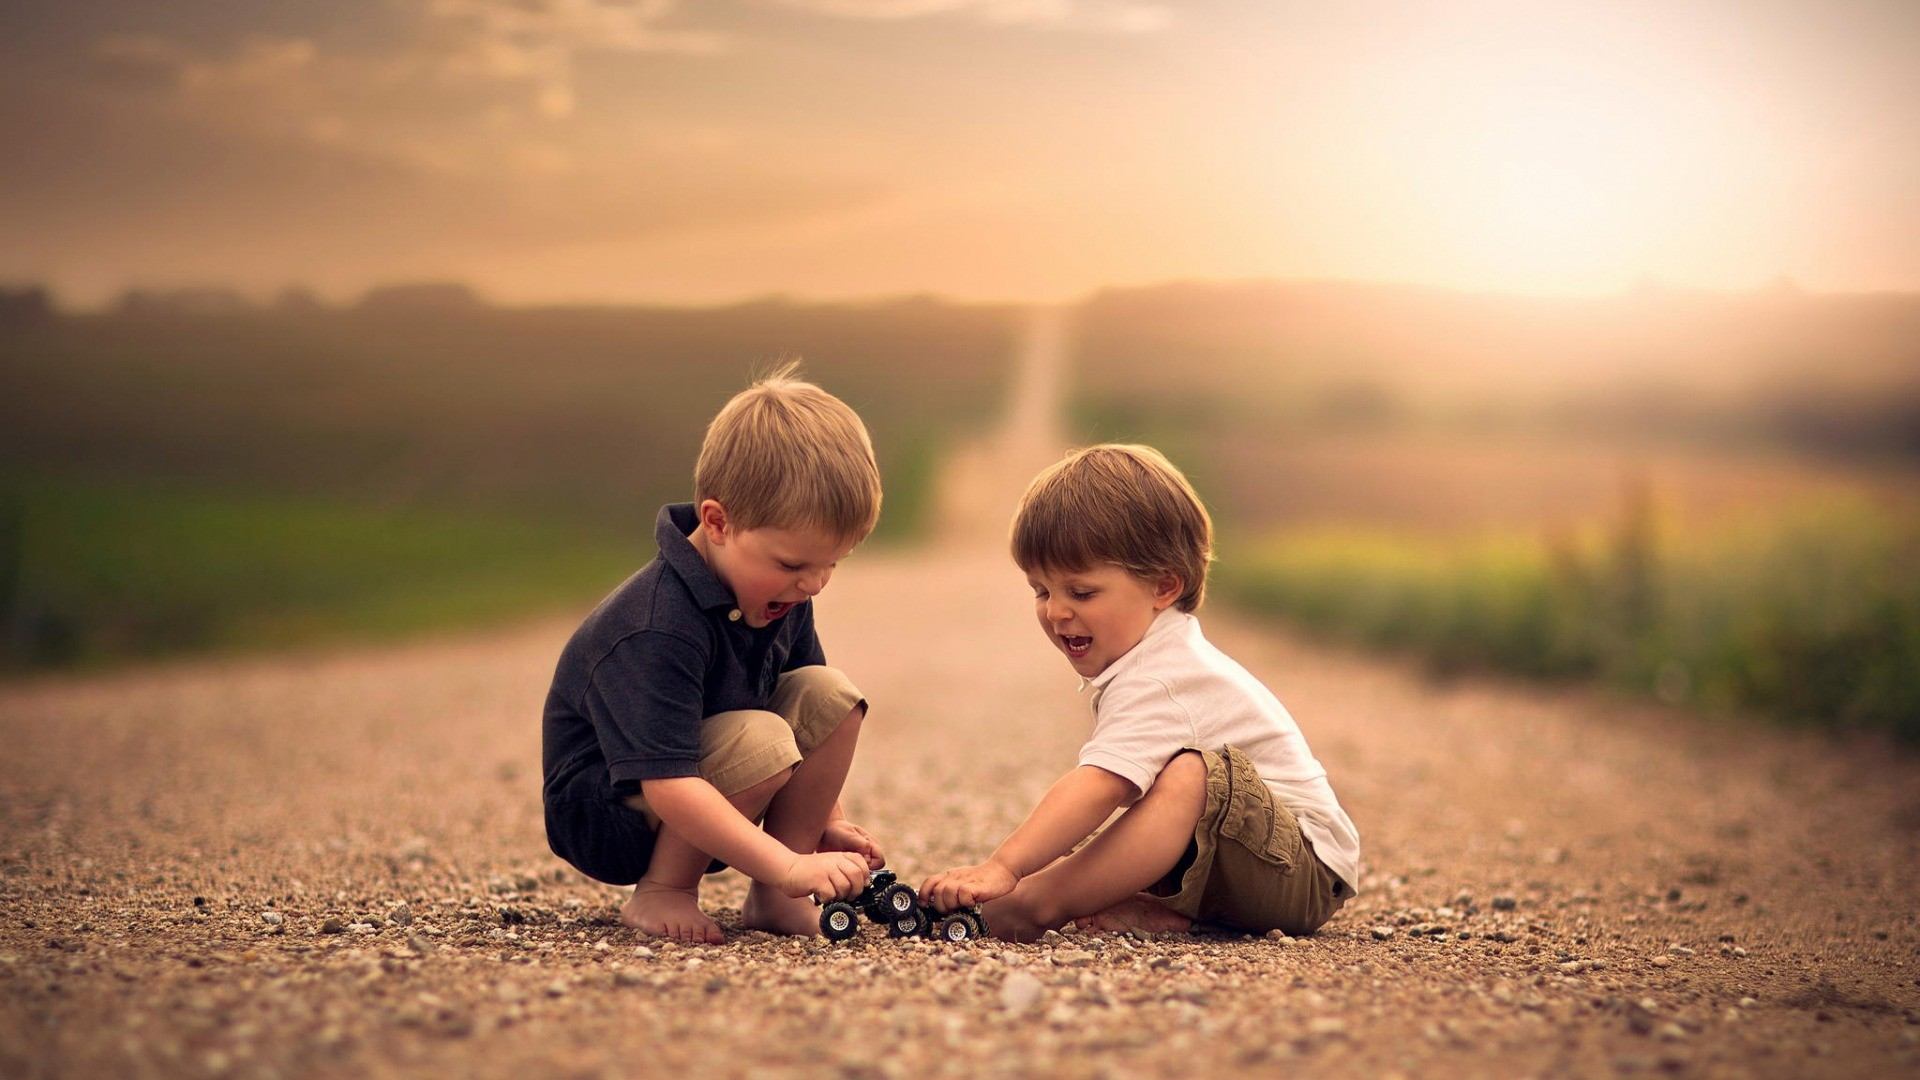 Boy And Girl Hug Wallpapers Wallpaper Sunlight People Toys Depth Of Field